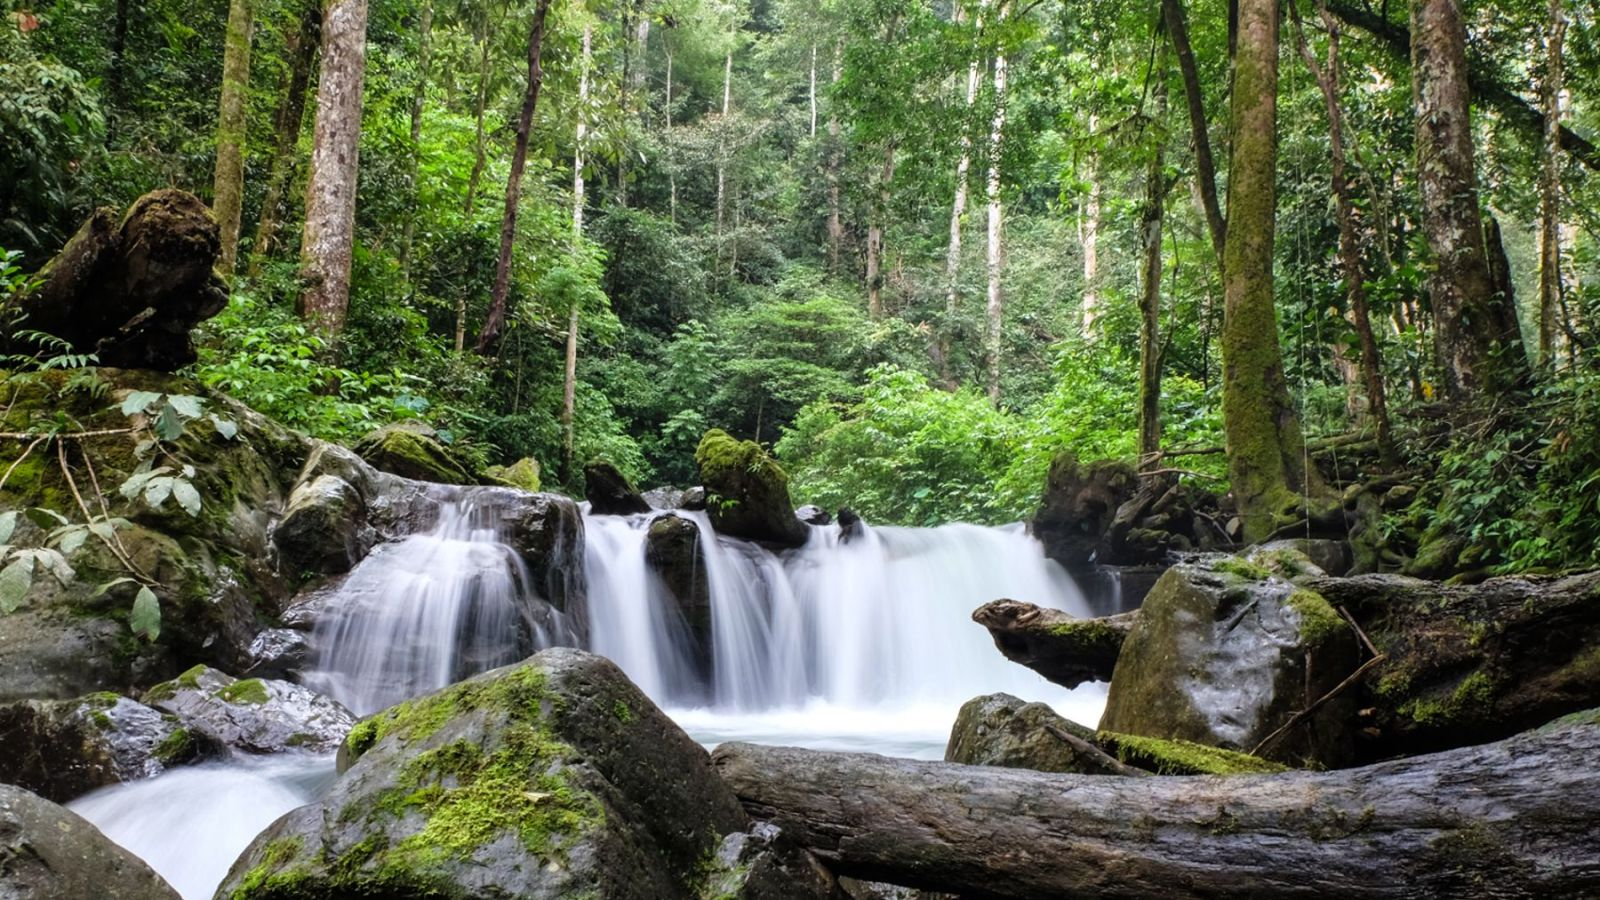 photo with long exposure of a waterfall in gunung leuser national park